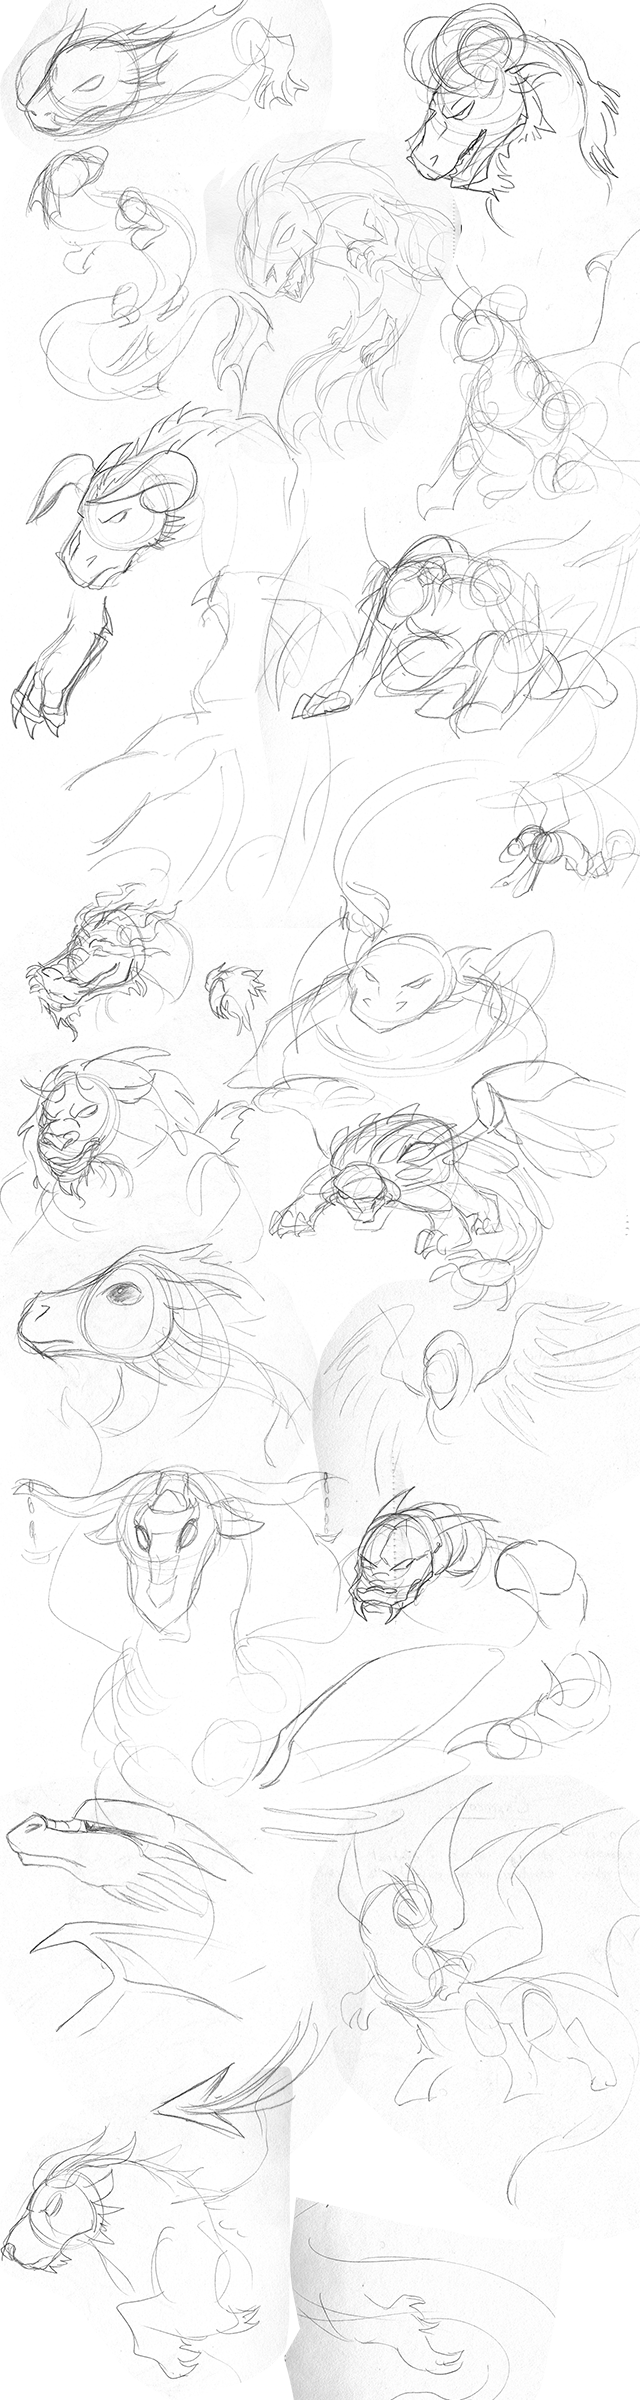 Dragon Sketches by dragonsong12